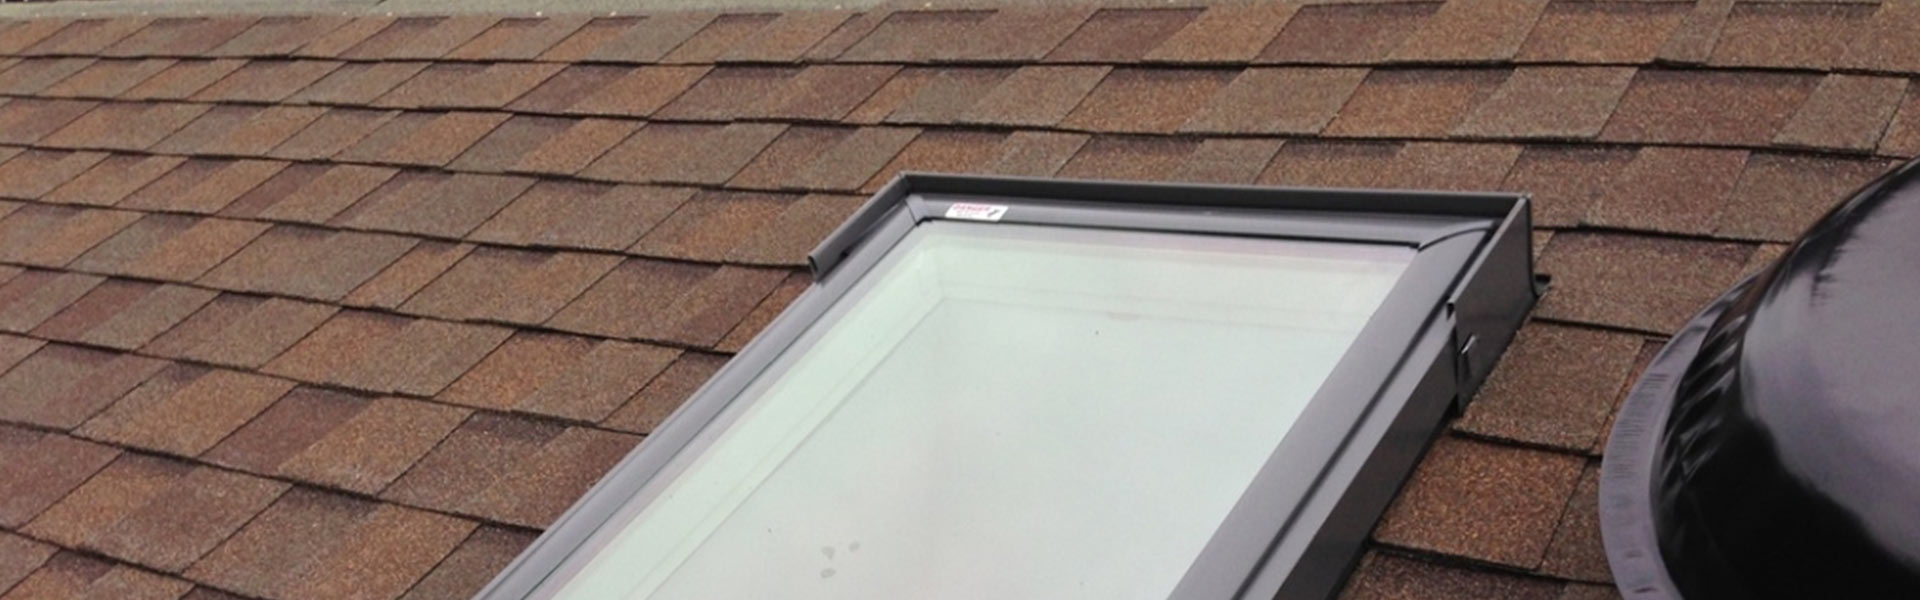 Skylight Window Repair Contractor Watershed Free Quotes